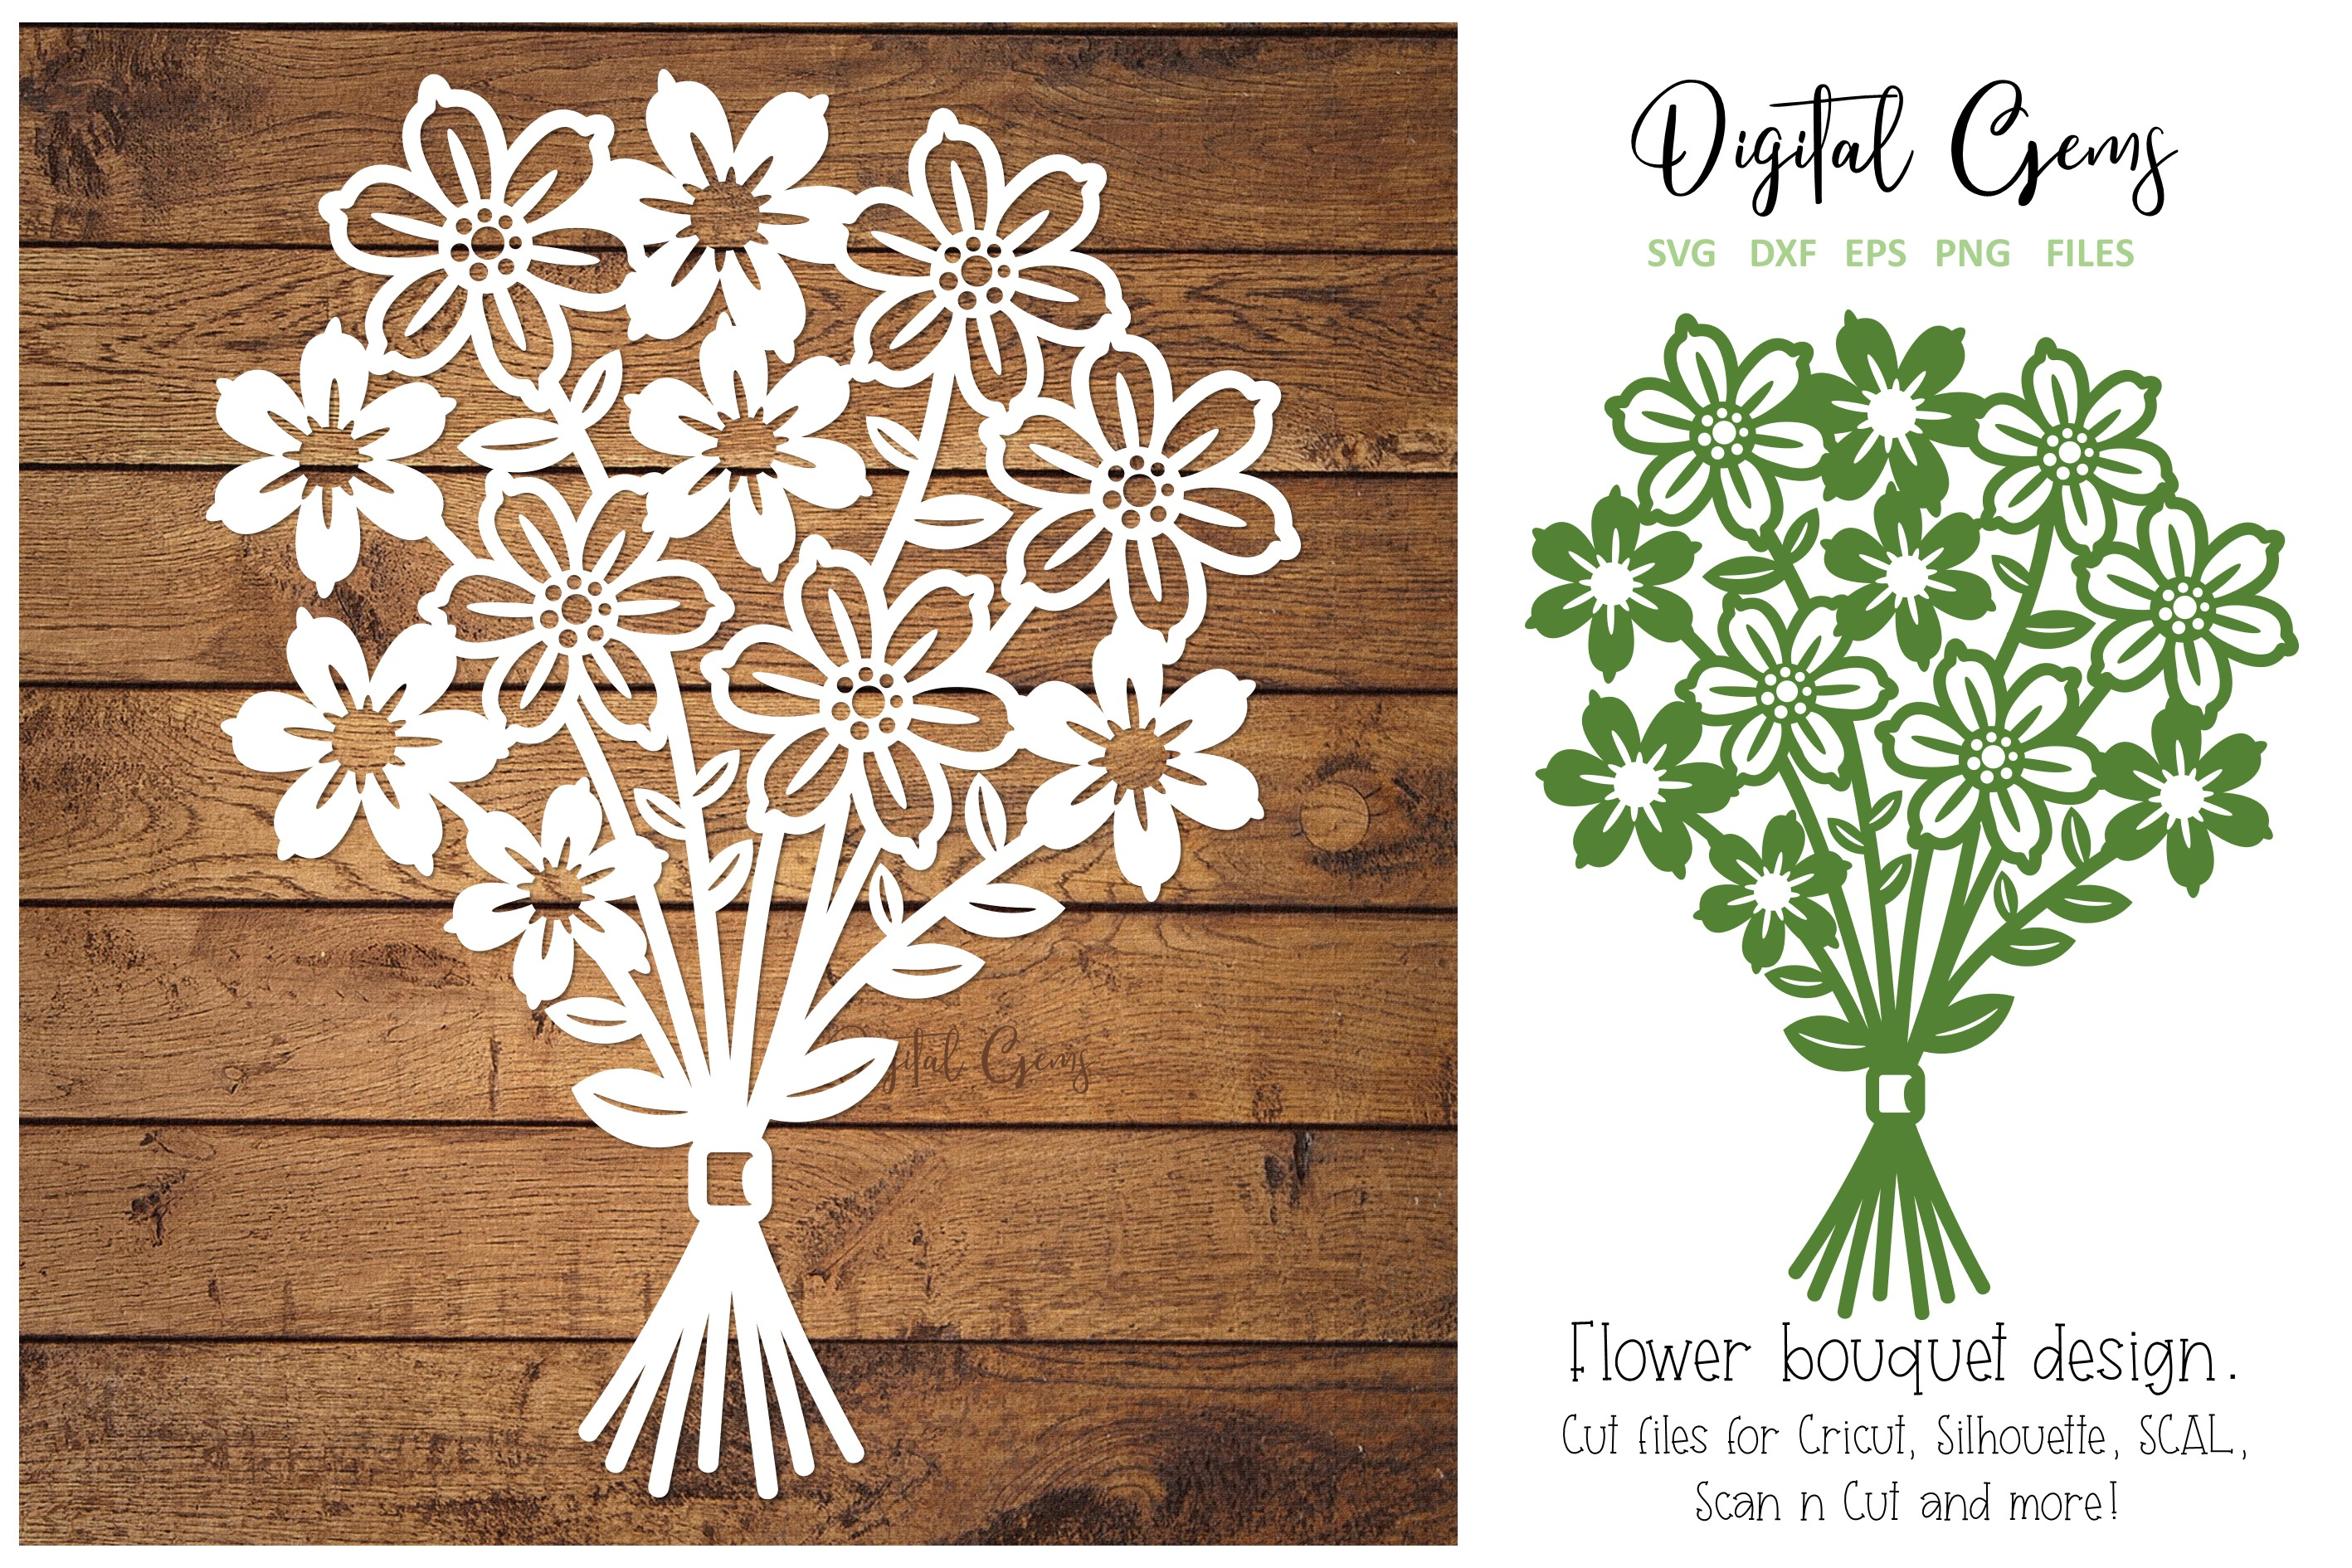 Download Free Flower Bouquet Papercut Design Graphic By Digital Gems for Cricut Explore, Silhouette and other cutting machines.